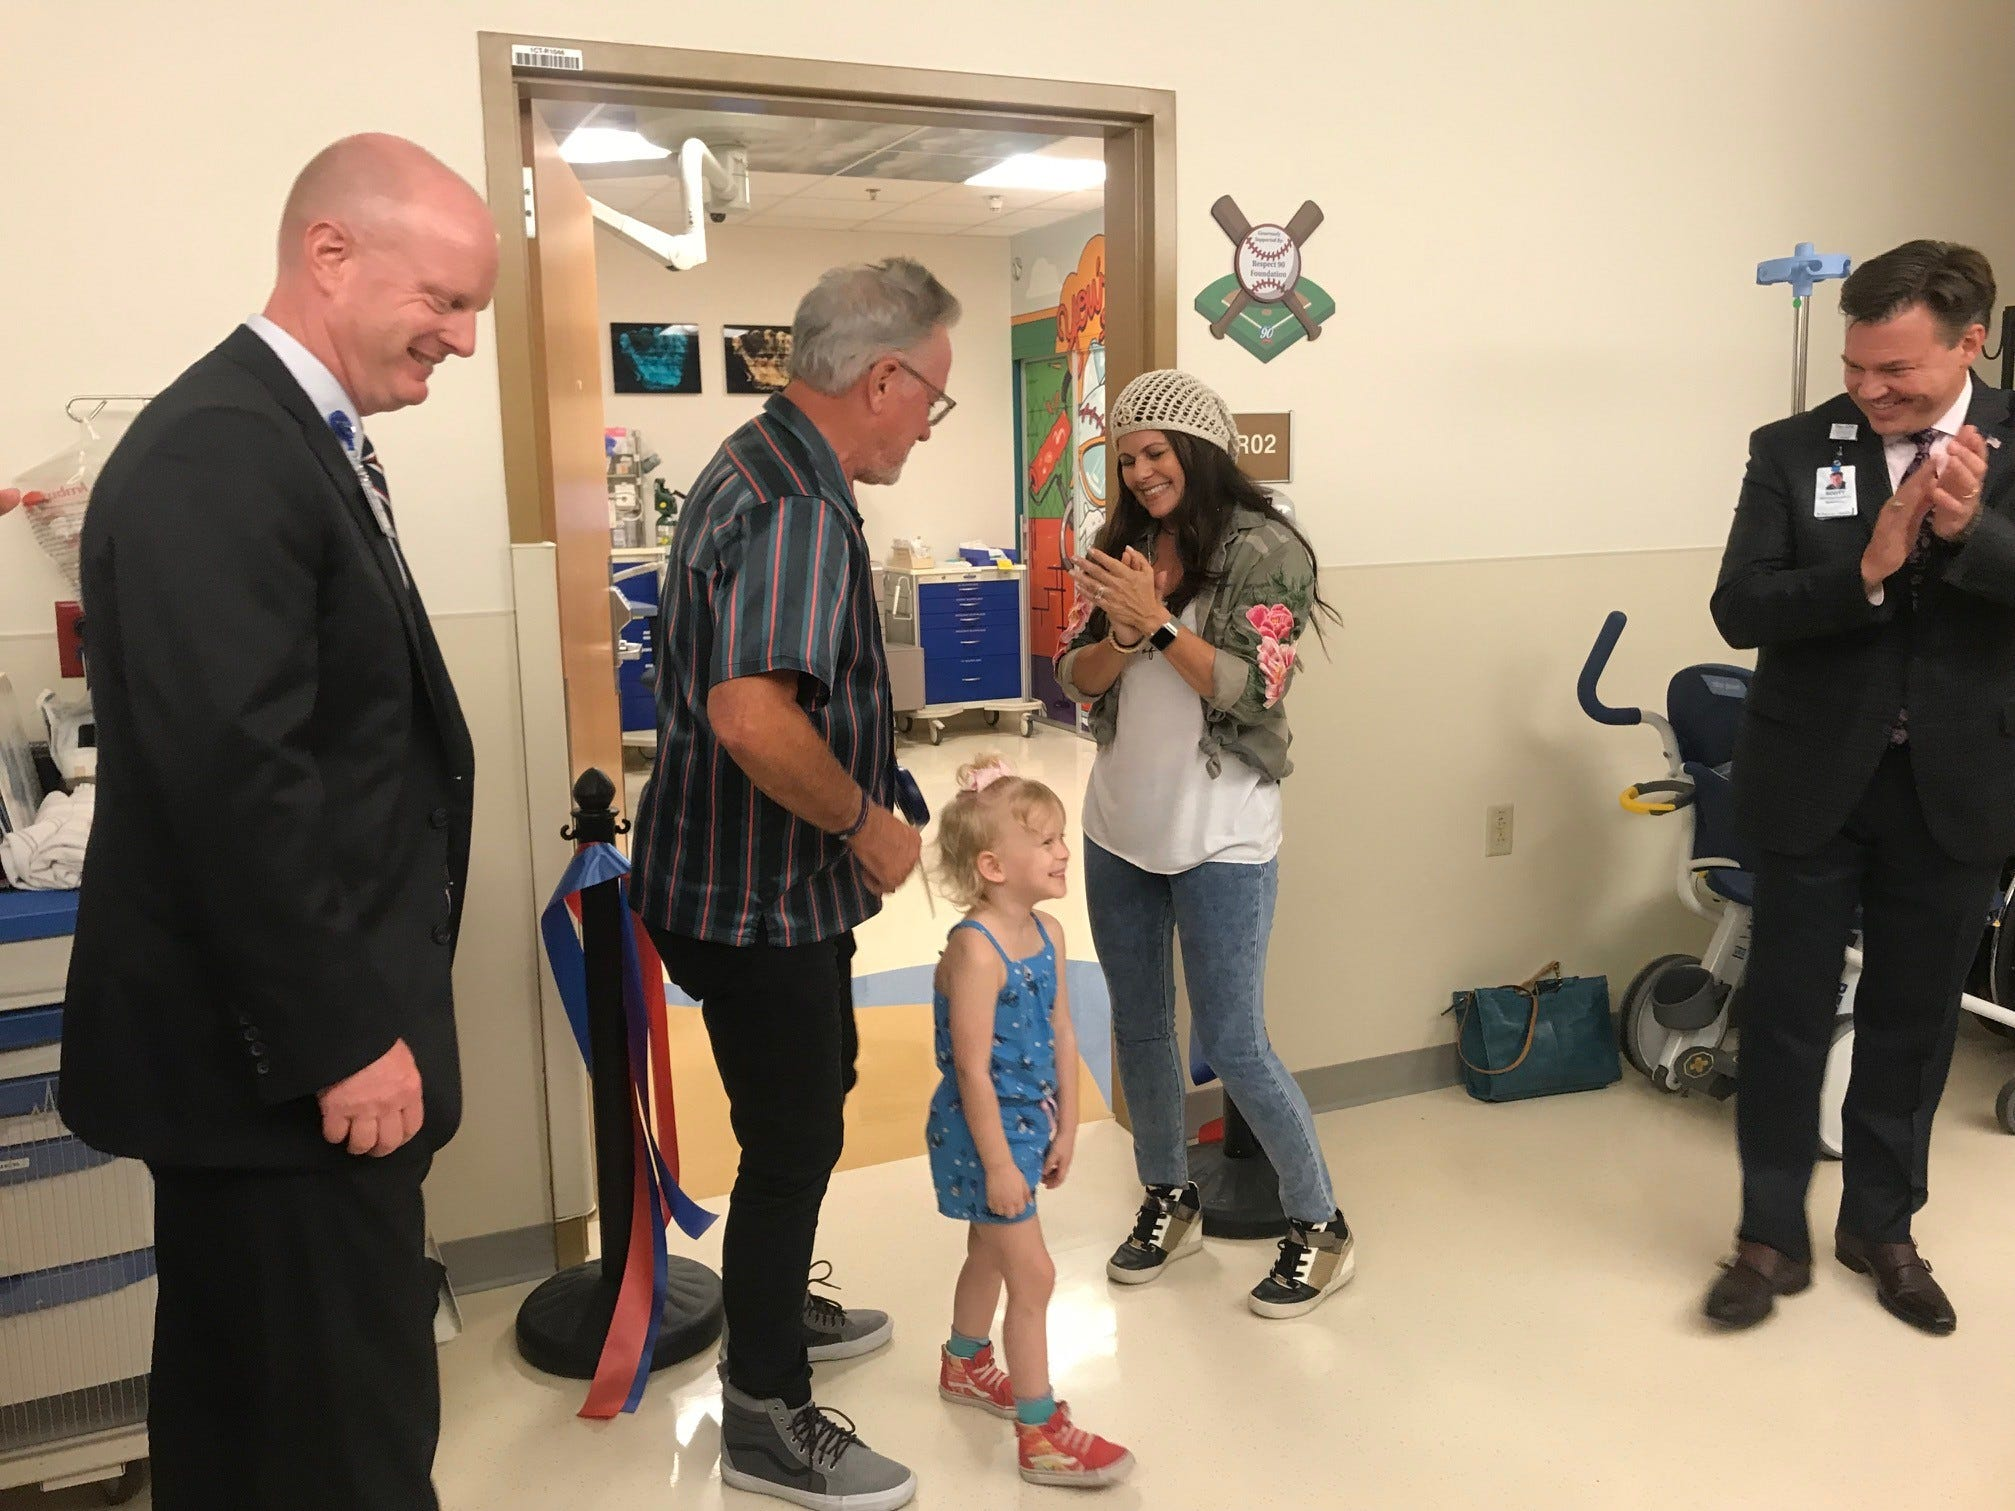 Chicago Cubs manager Joe Maddon celebrated the opening of two renovated pediatric outpatient treatment rooms at Cardon Children's Medical Center in Mesa on Sept. 18, 2018.